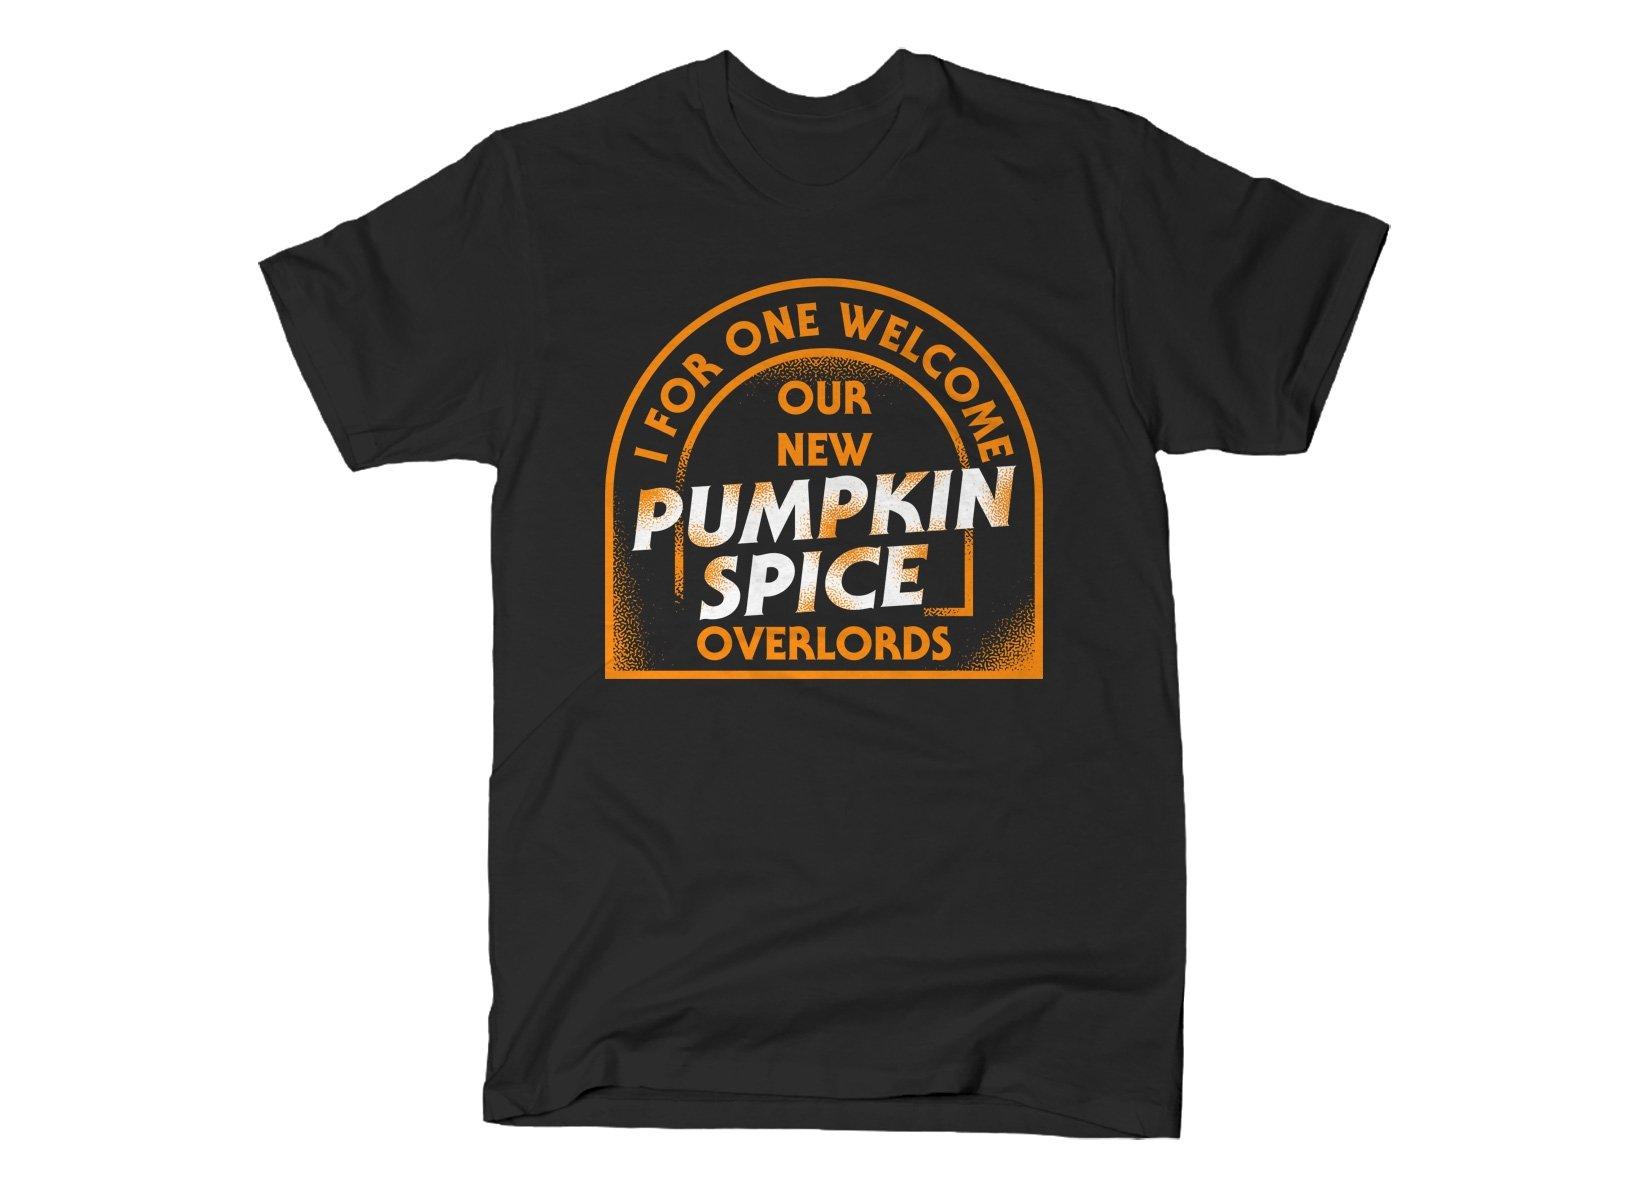 Pumpkin Spice Overlords